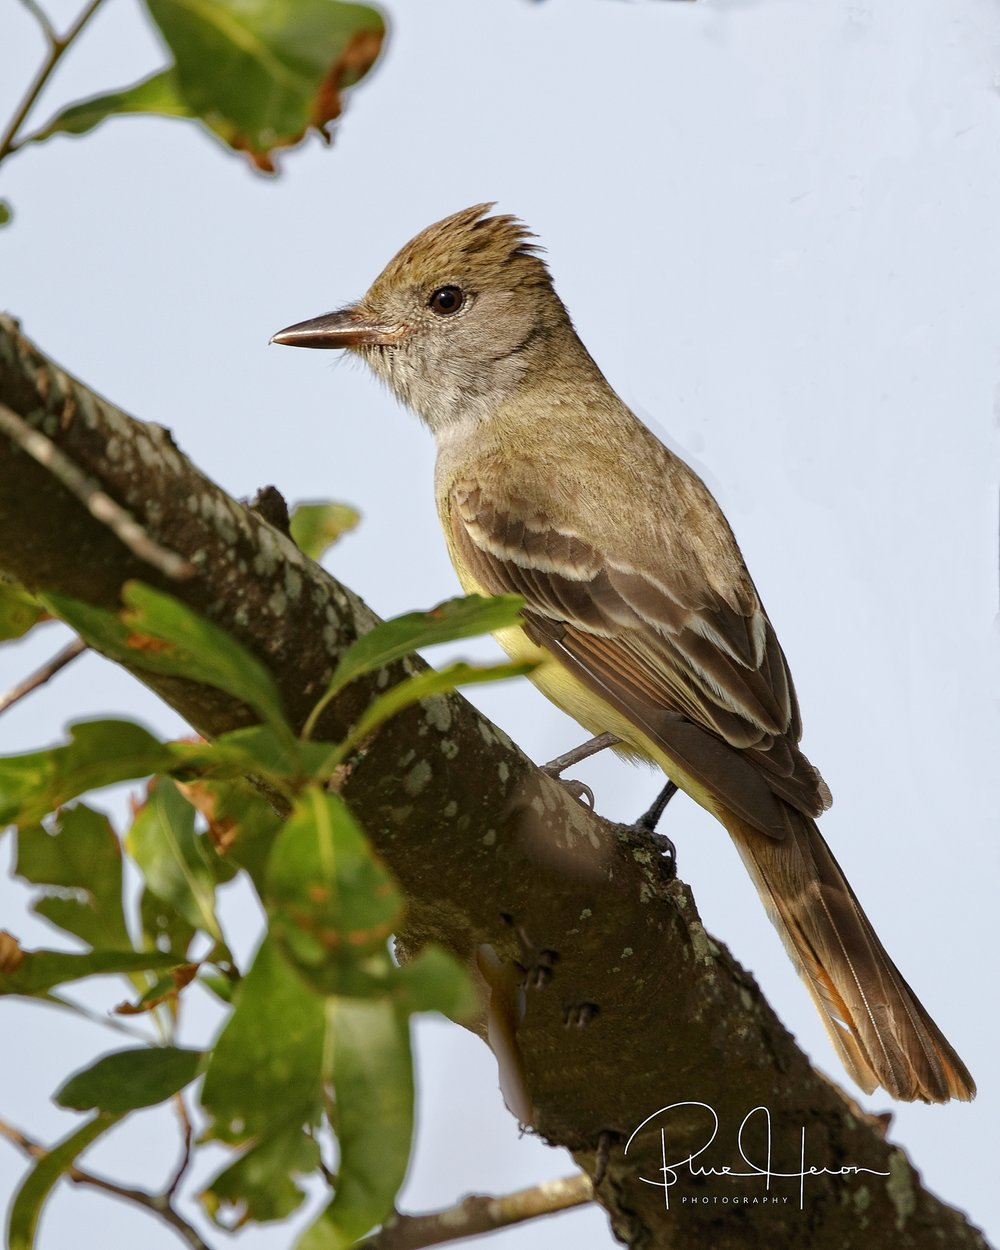 A first for me, Great Crested Flycatcher..nice surprise!